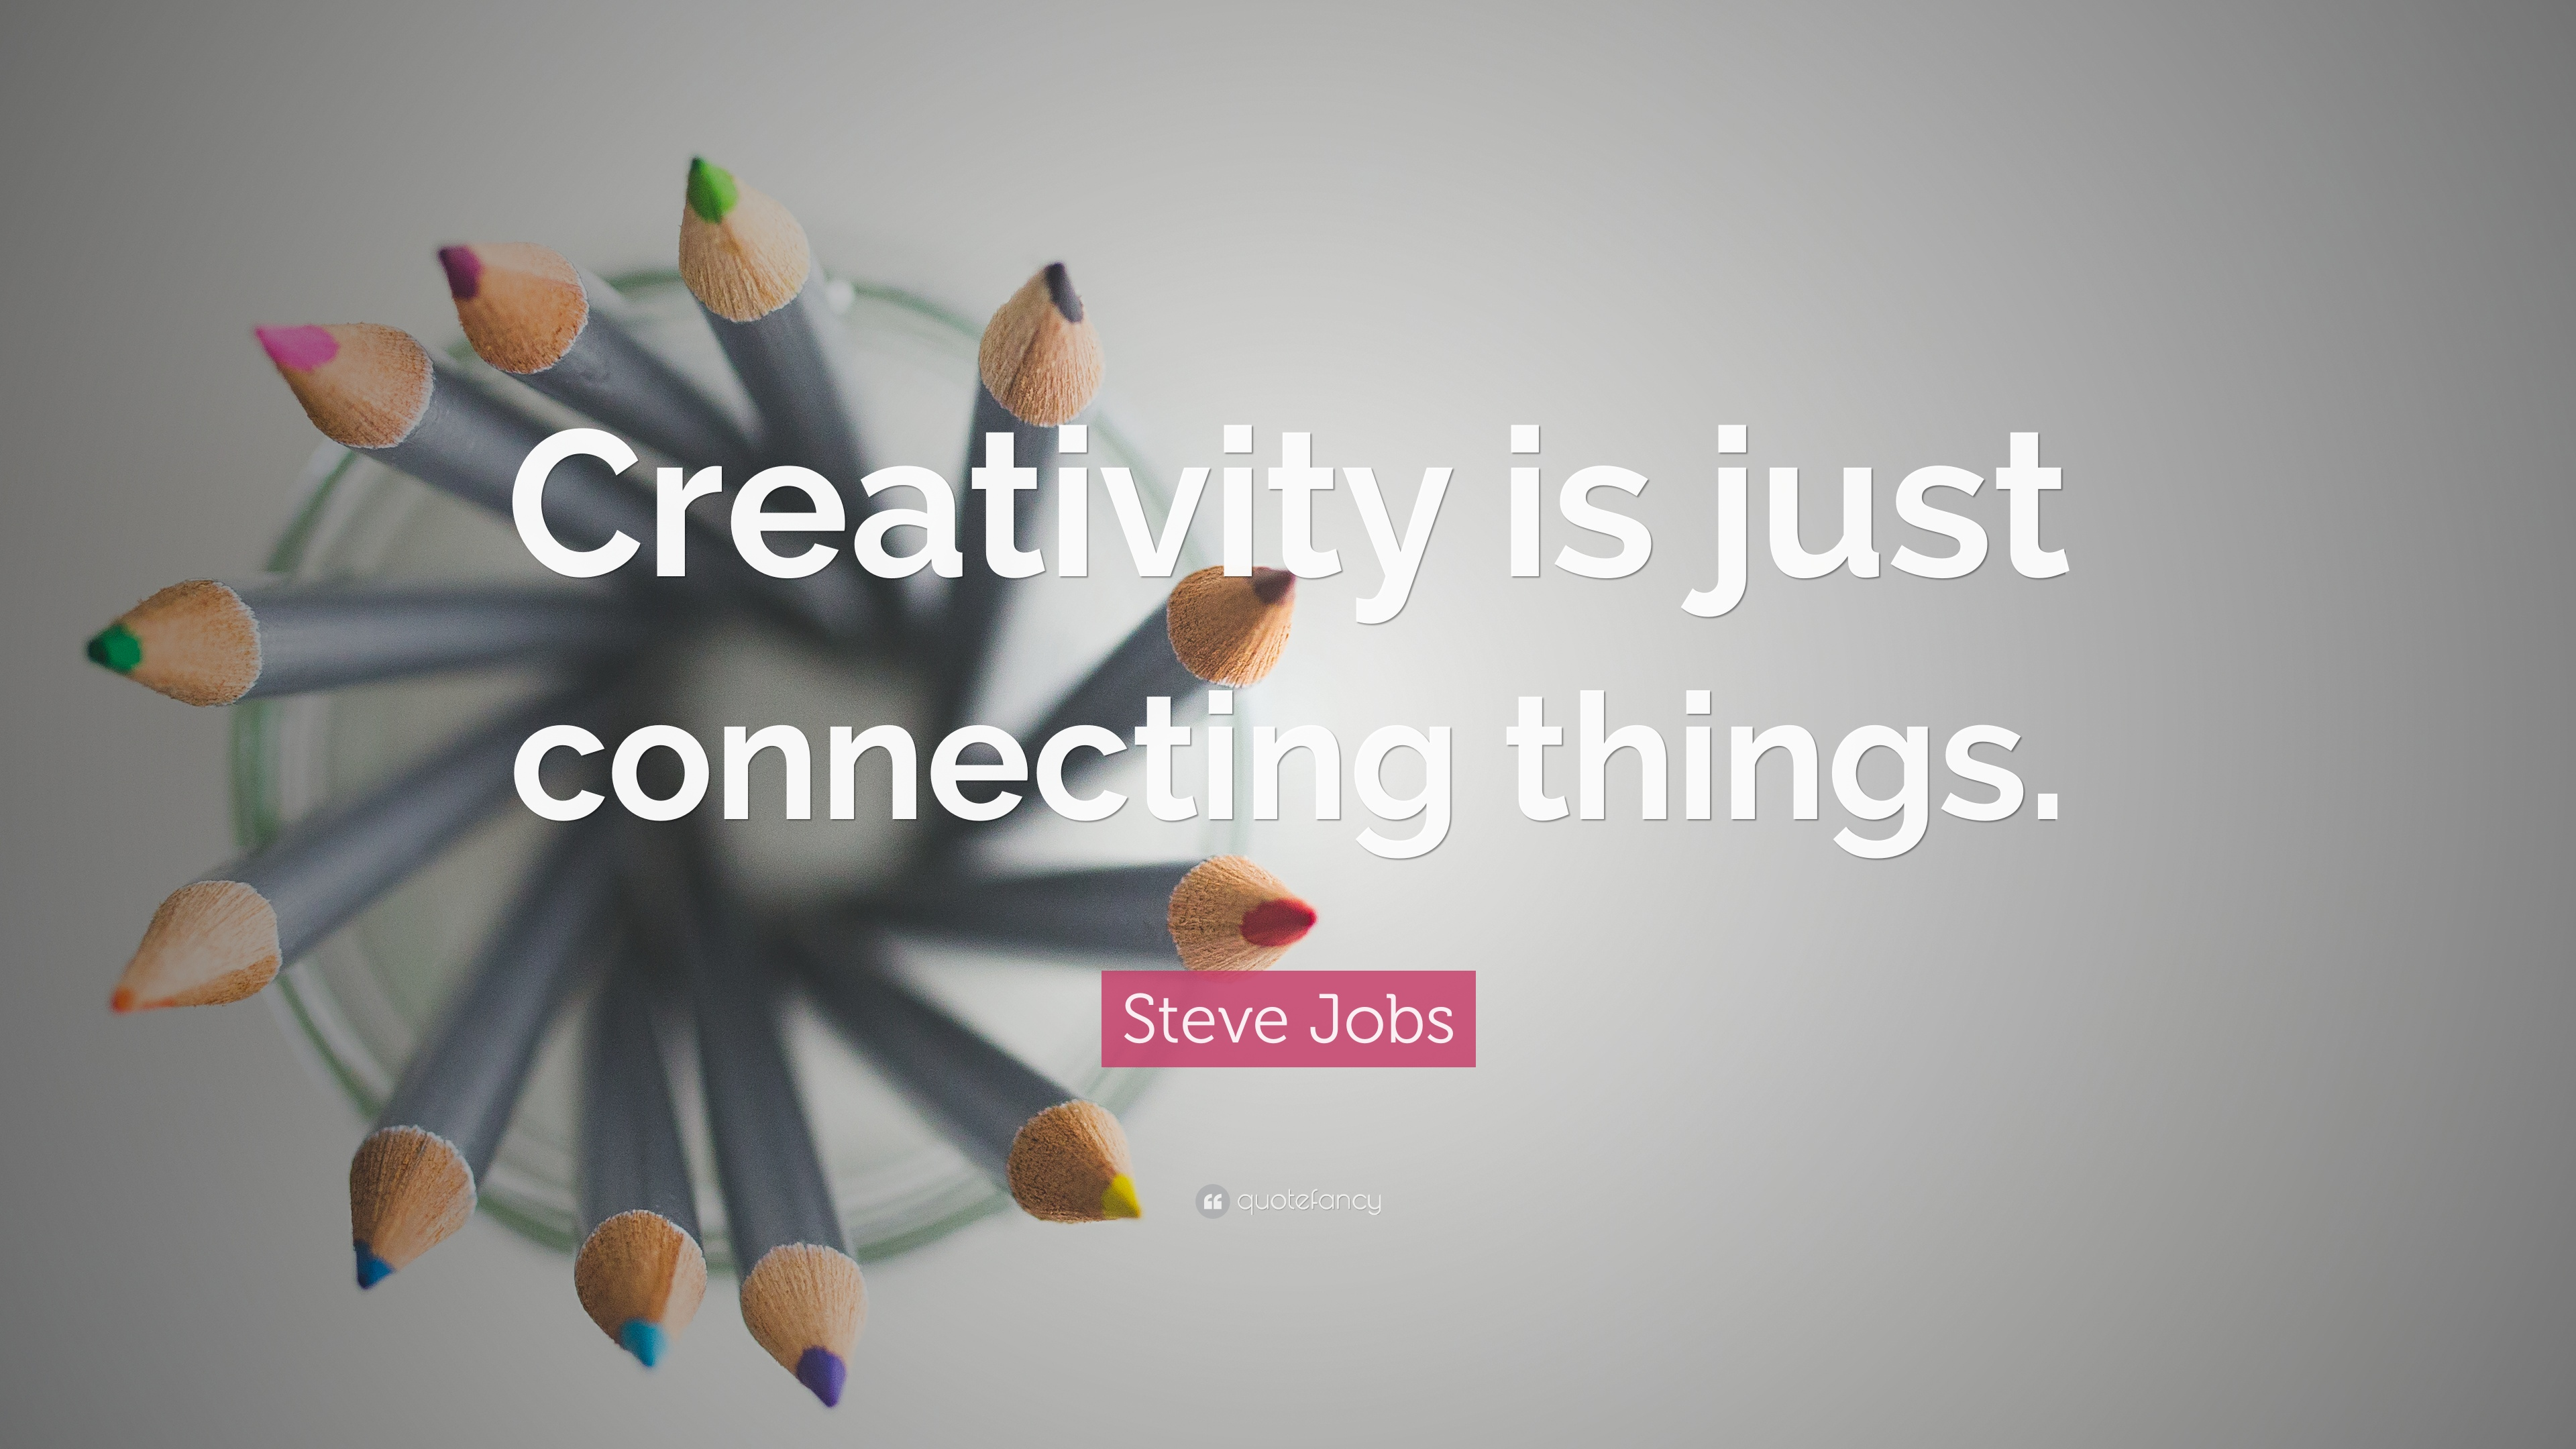 Creativity is connecting things steve jobs.jpg